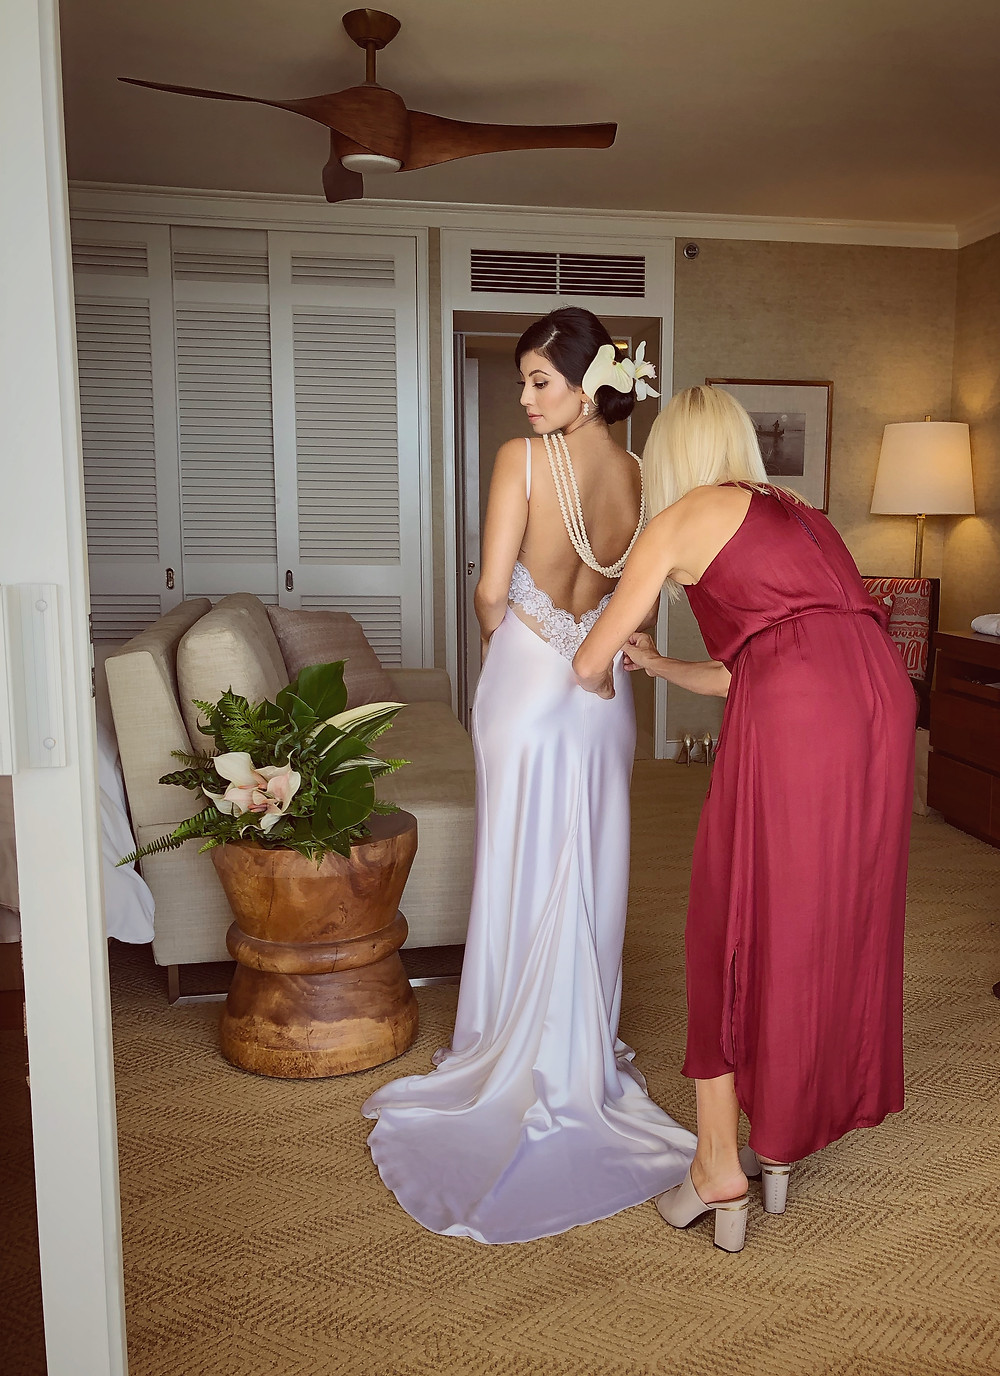 Jules Bly dressing bride at Four Seasons Resort Koolina